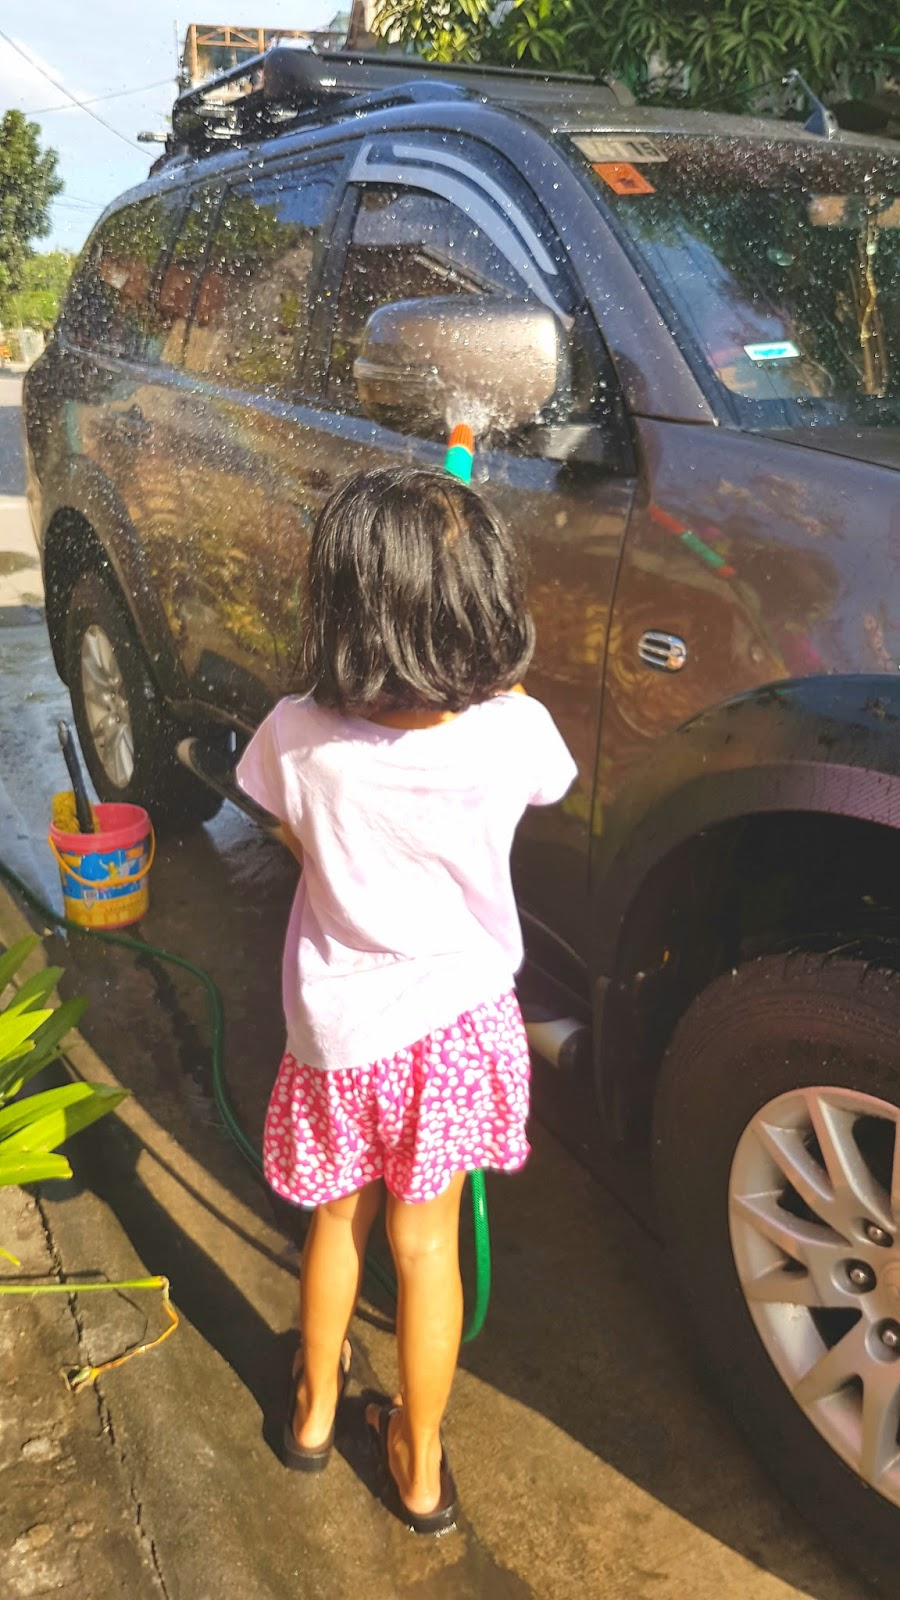 kid car washing an suv called mitsubishi montero outside the house